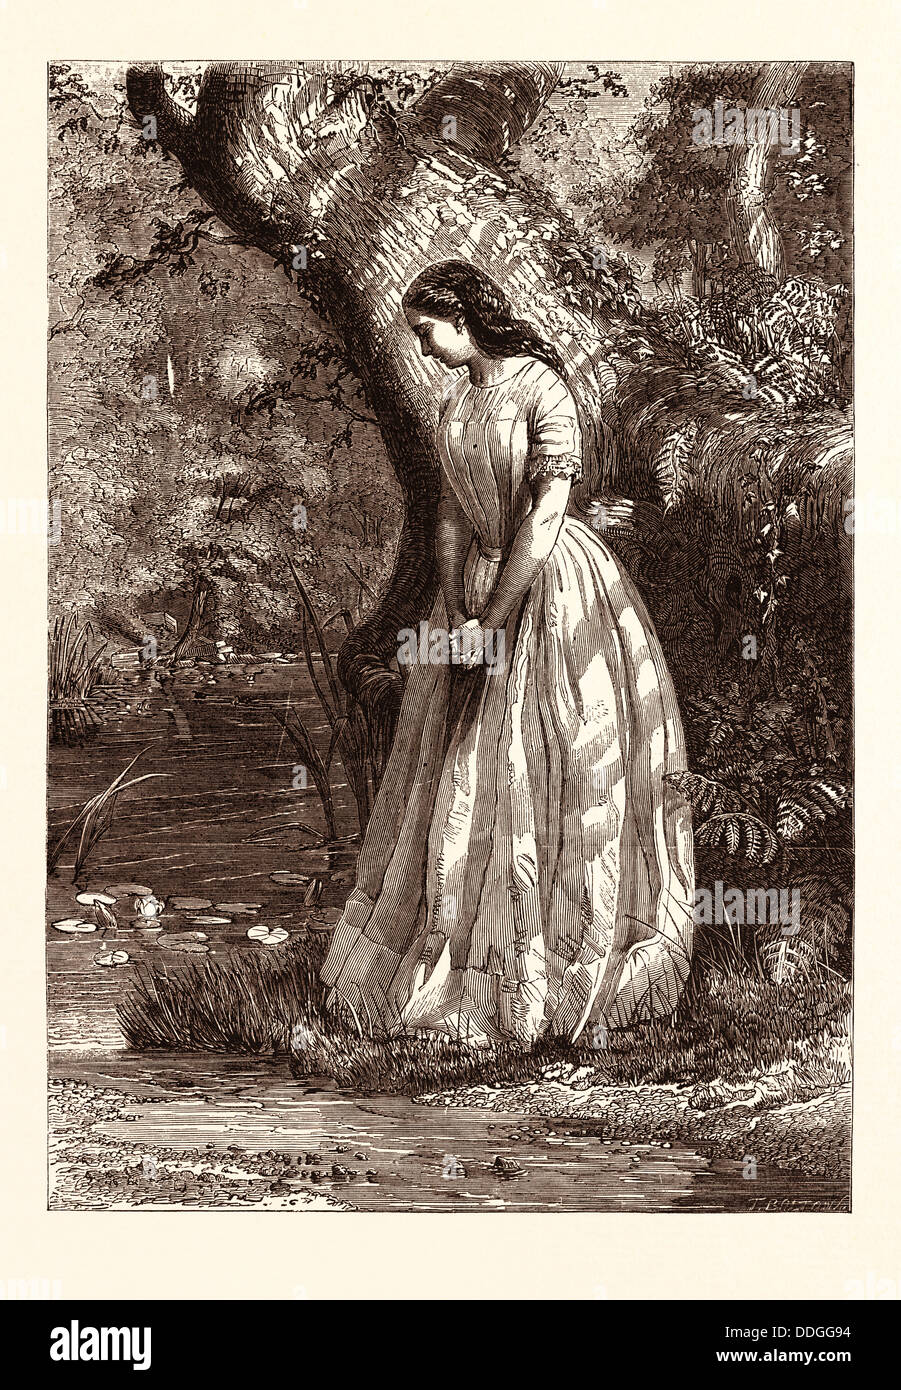 MAIDENHOOD  PAINTED BY G.E. HICKS - Stock Image